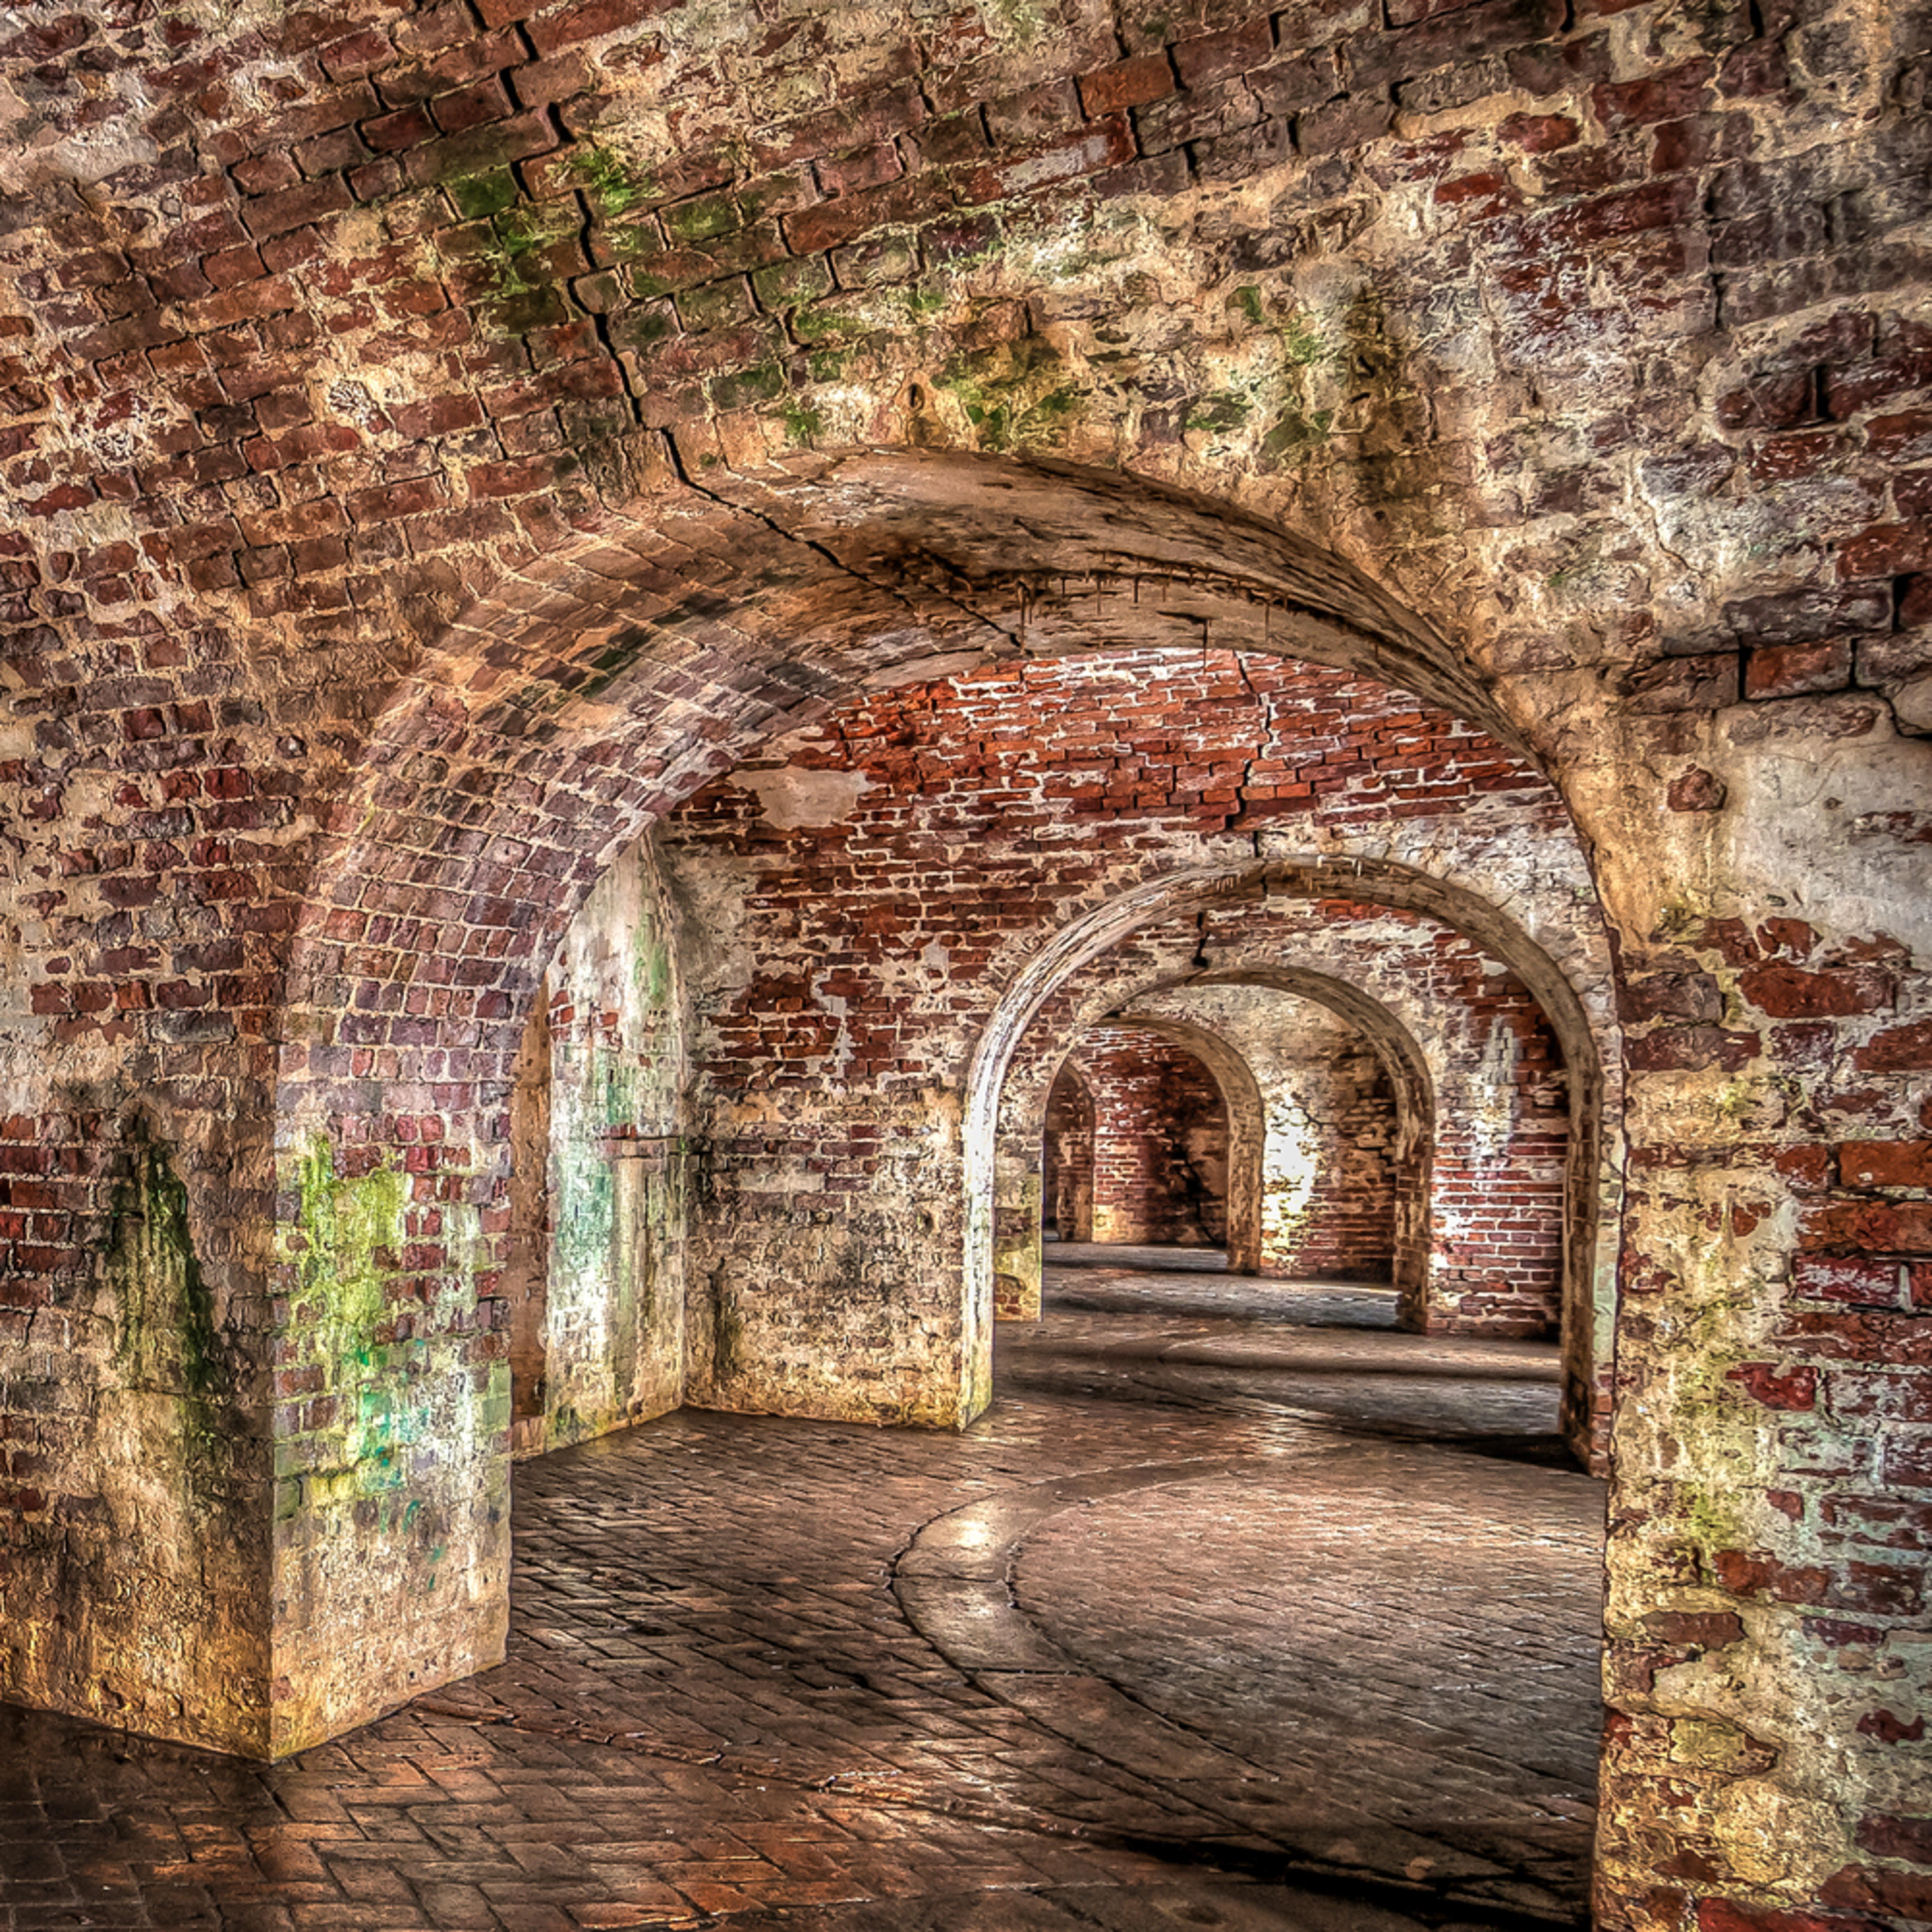 New orleans fort macomb 0414 1 whlc7j